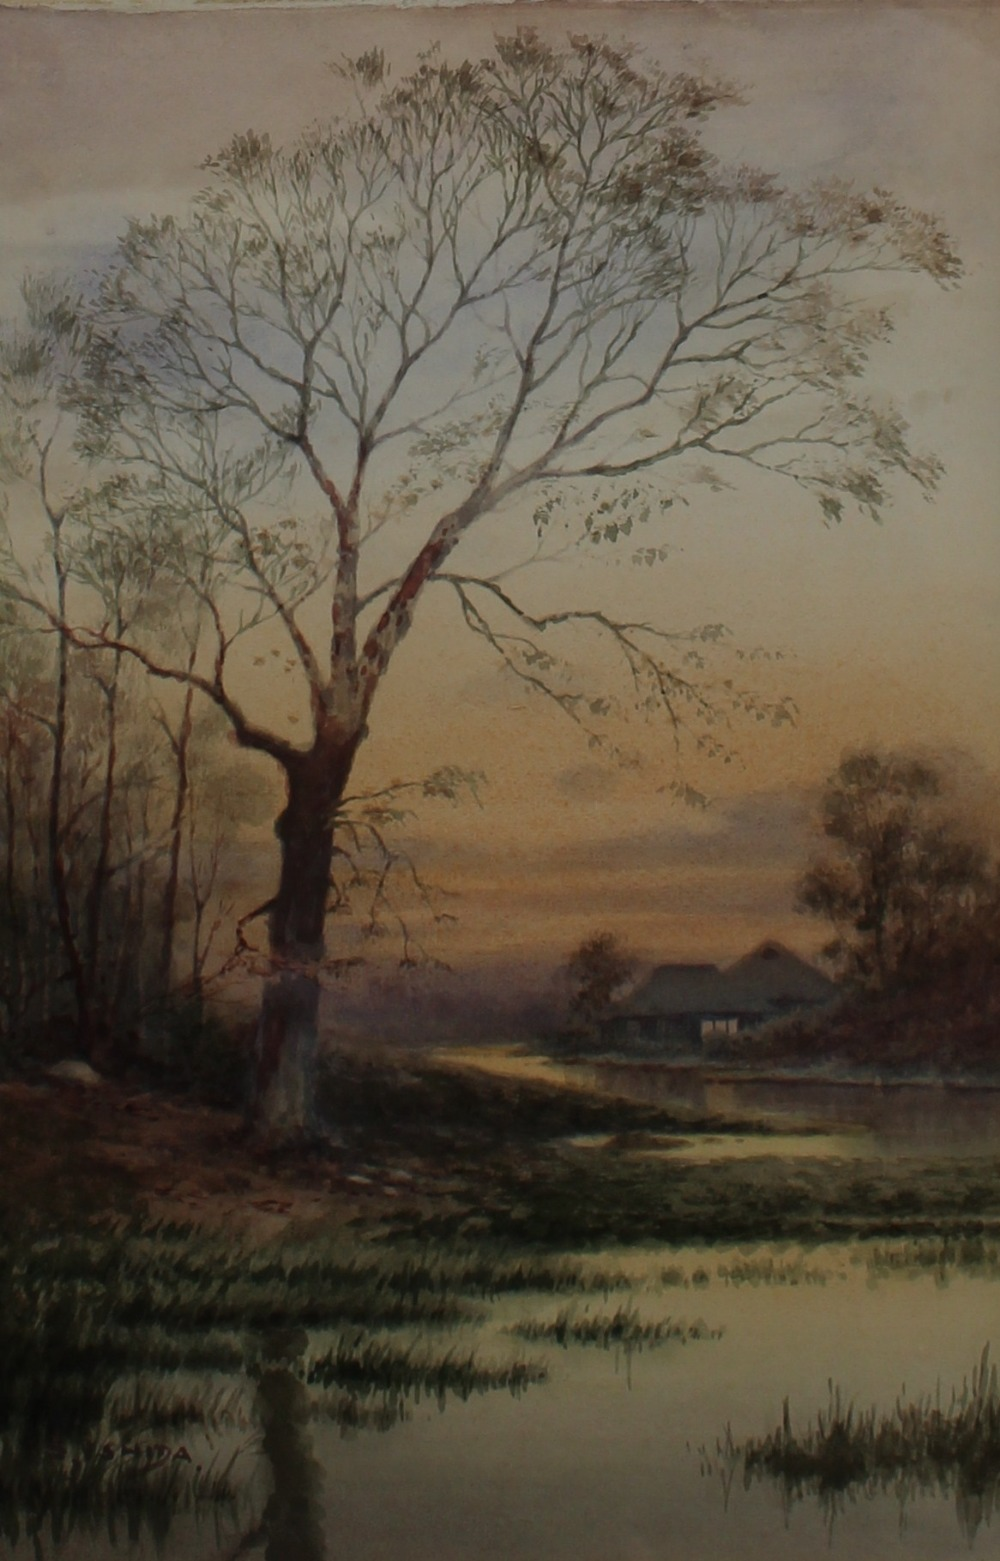 Lot 483 - S. Ishida  A river landscape with a tree in the foreground and a cottage beyond Watercolour Signed